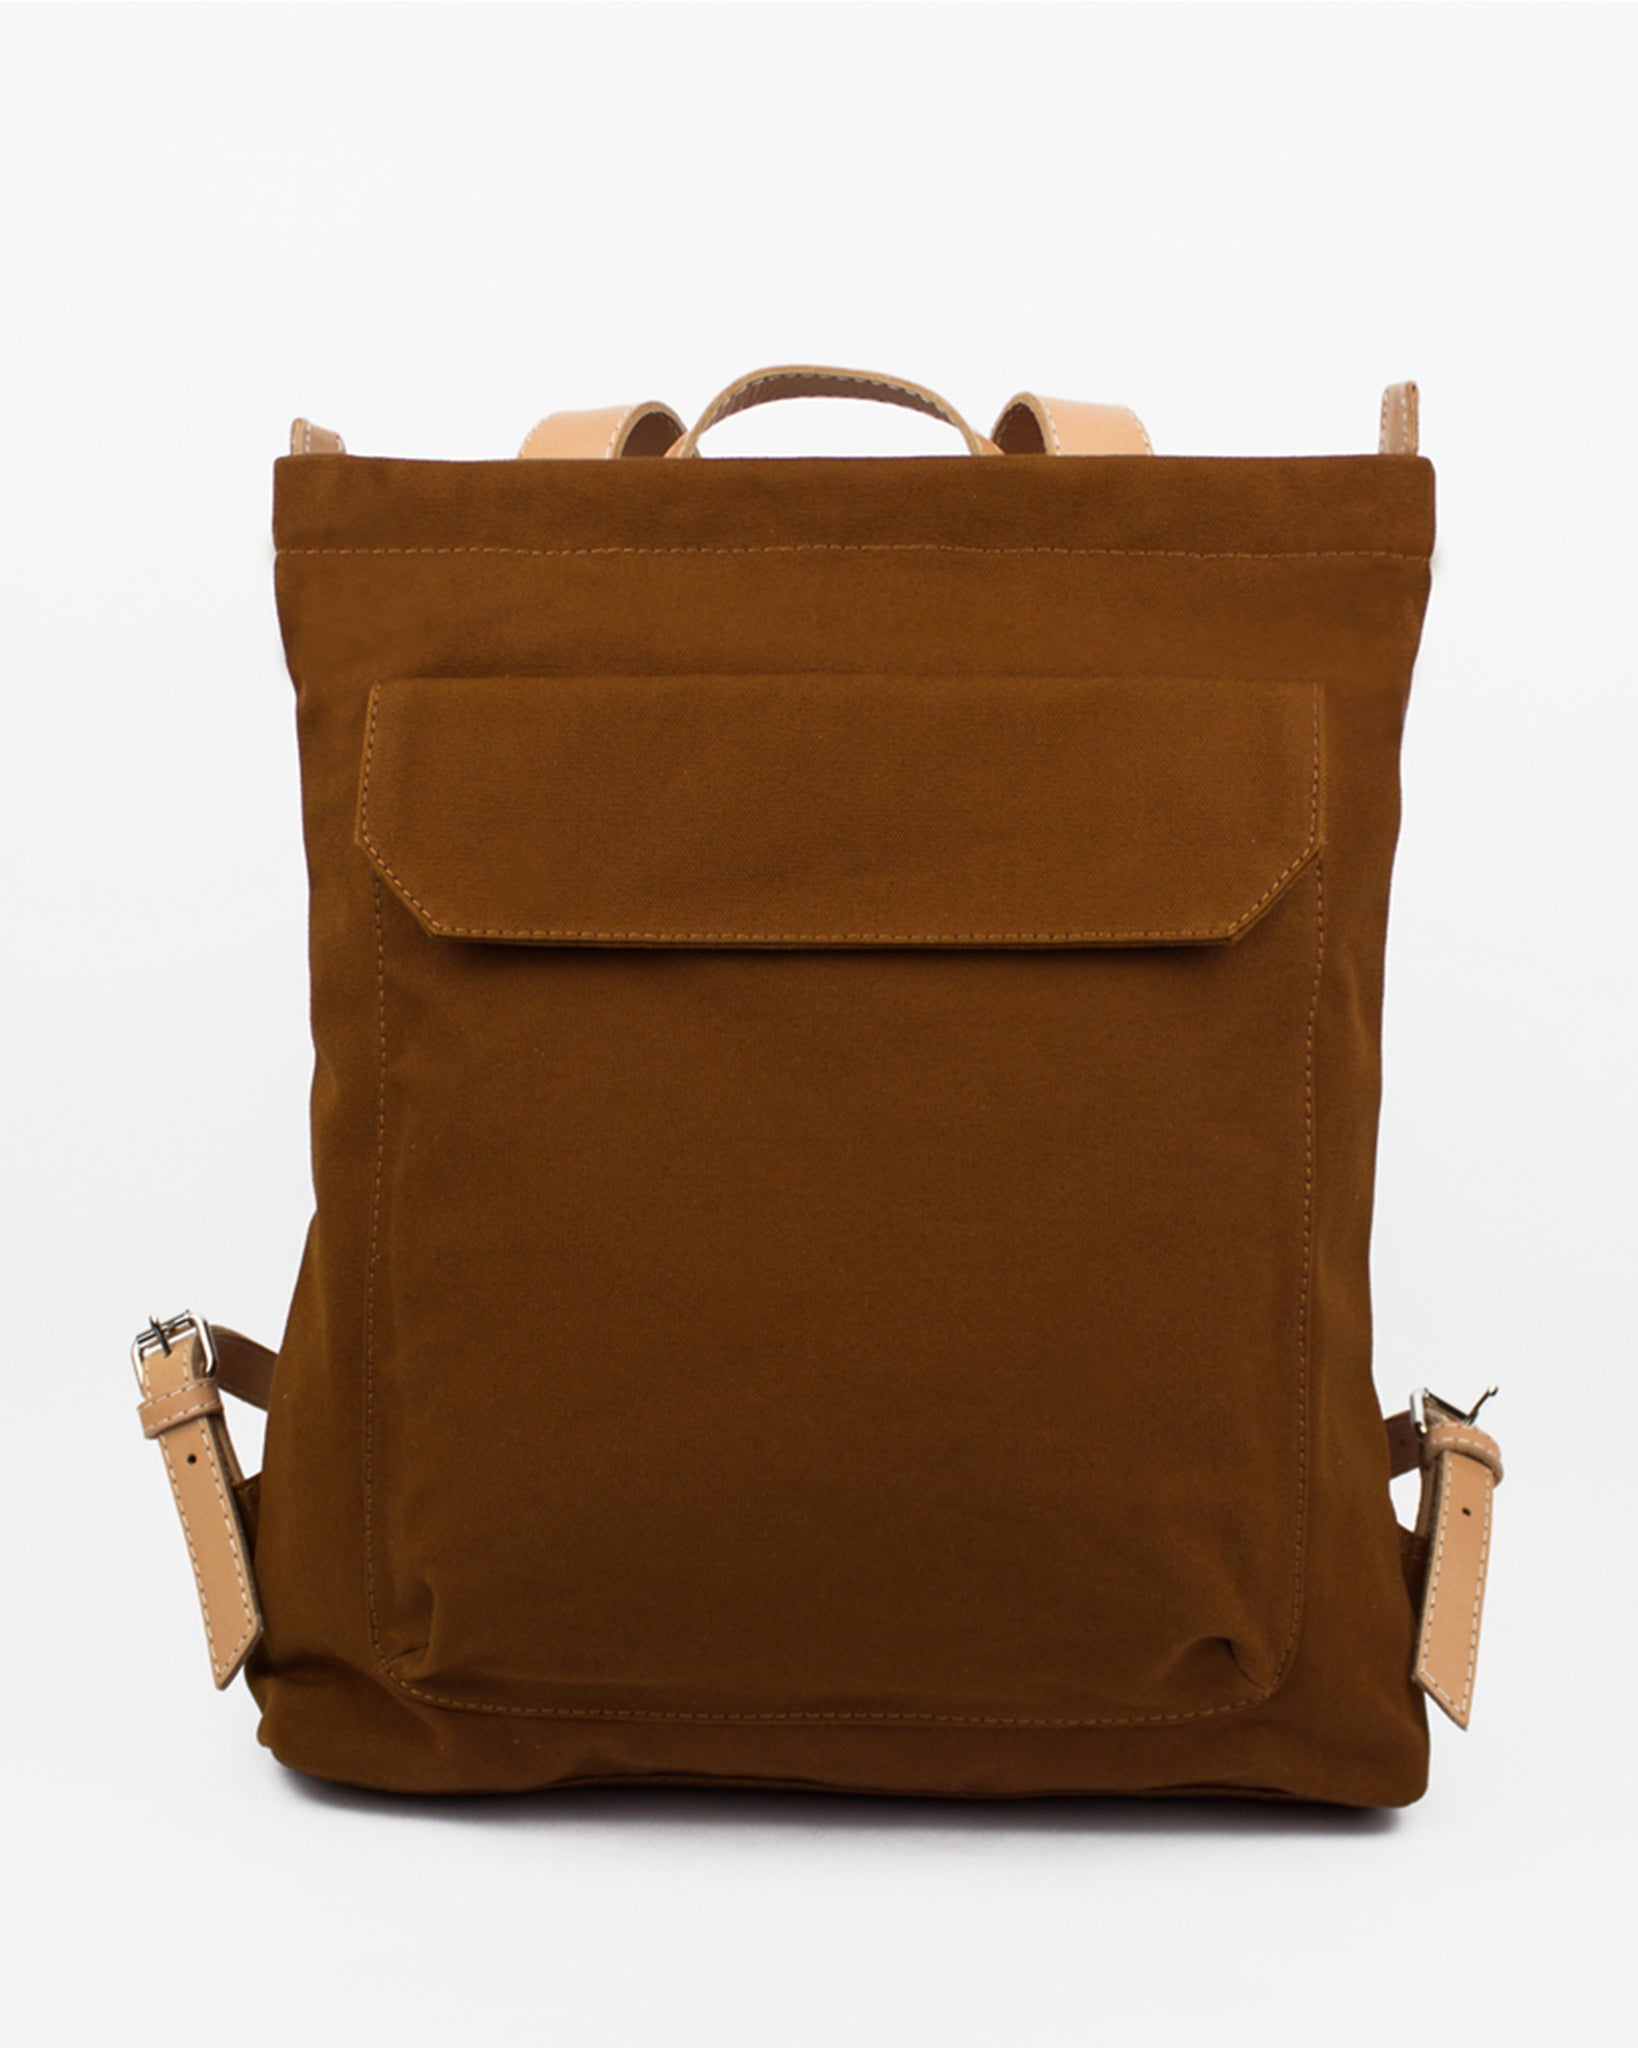 Le Bas Burnt Orange Canvas Zip Pack with Leather Straps available at Lahn.